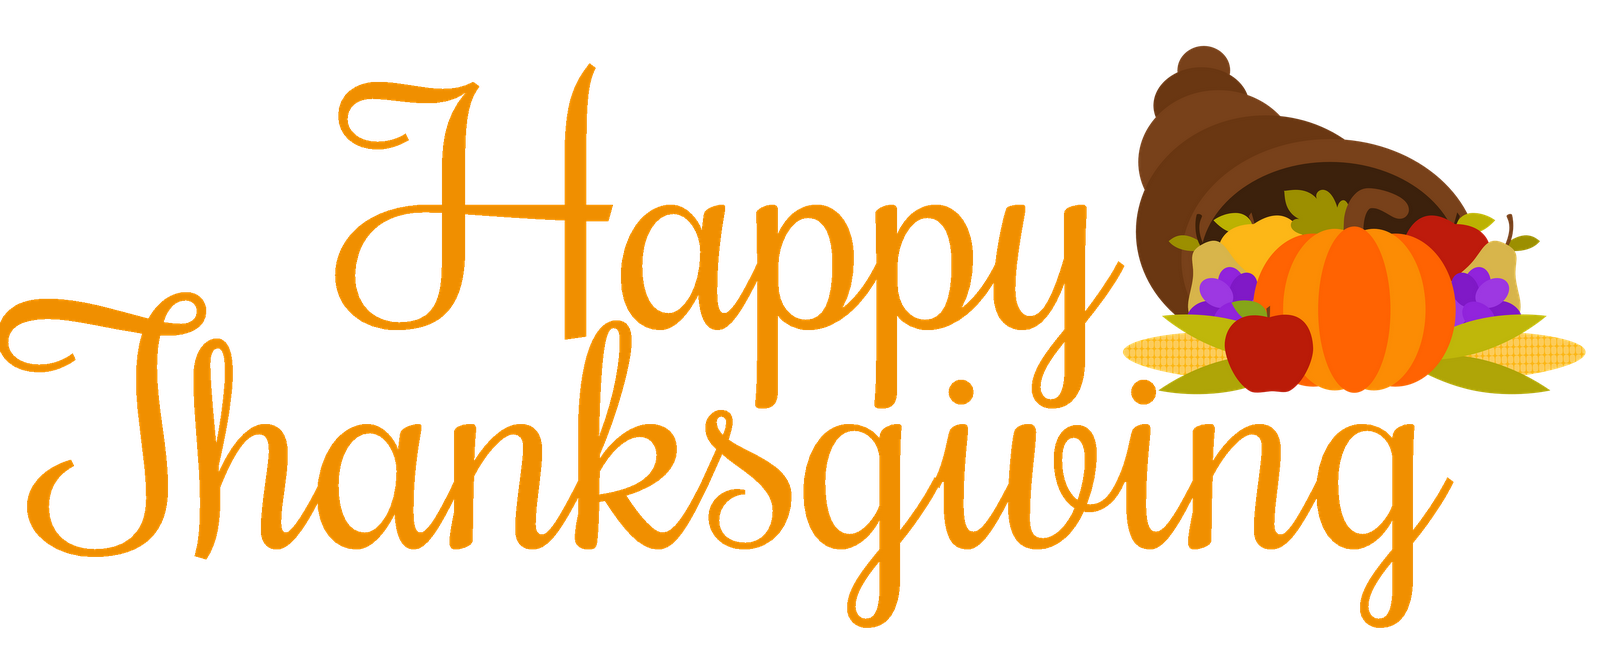 Happy thanksgiving png. Everyone community codecademy forums